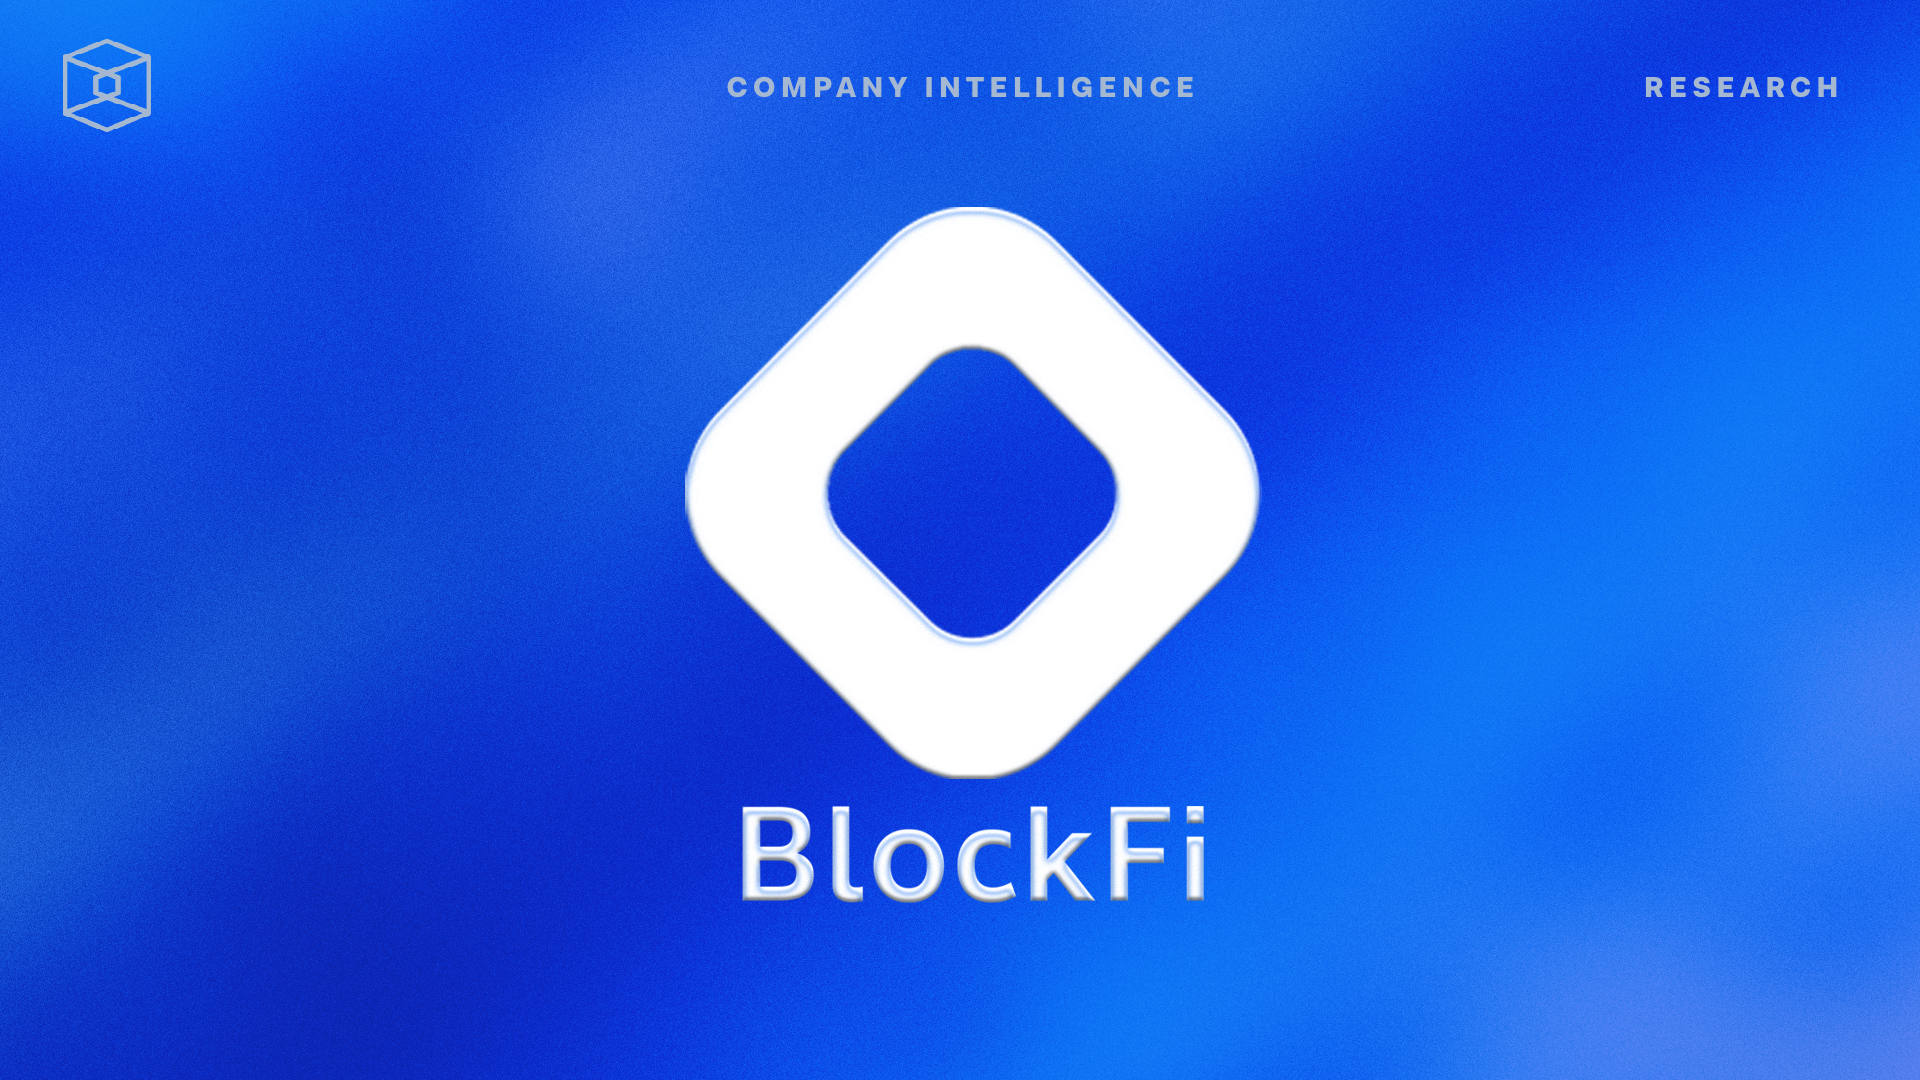 BlockFi Company Intelligence: Building a Crypto-Native Neobank for a Growing Industry